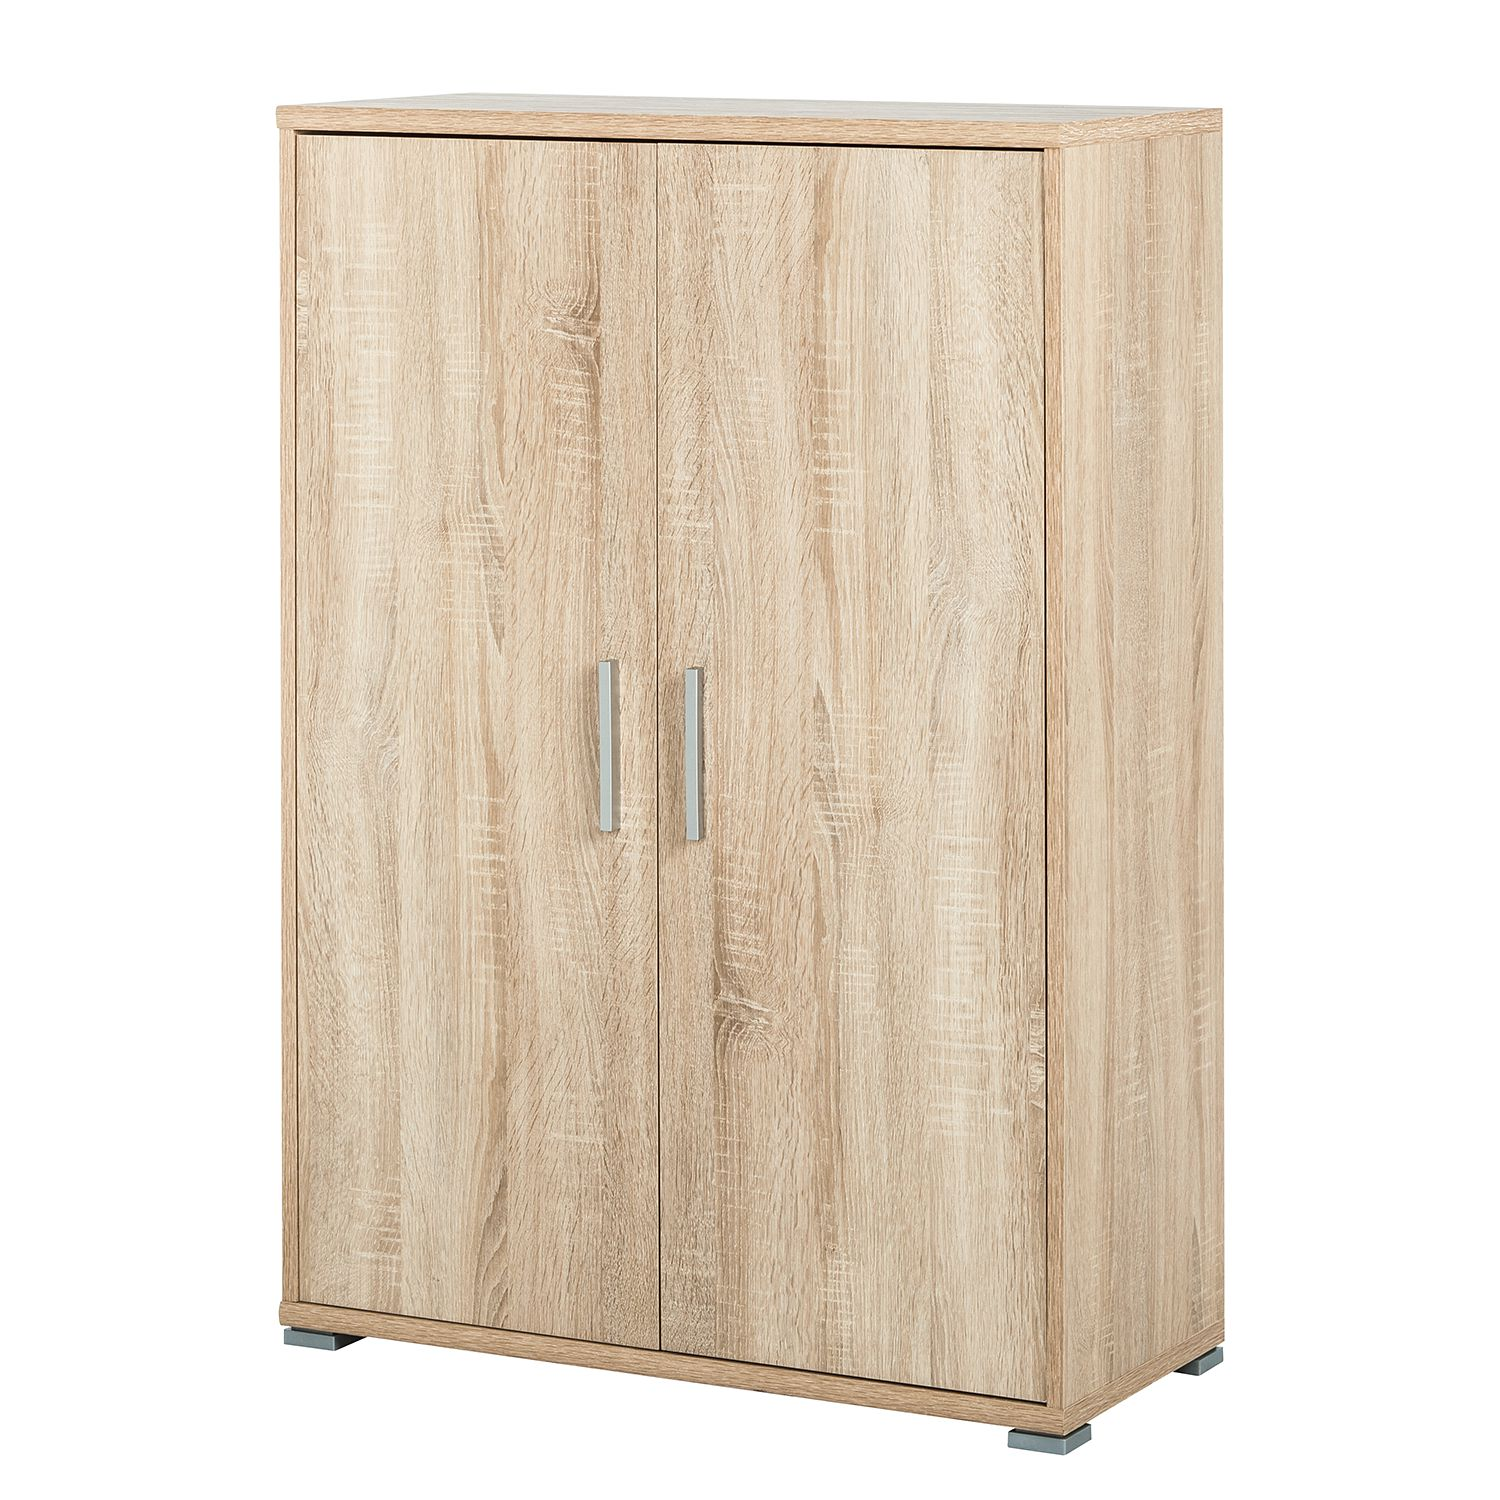 Aktenschrank Office Line III - Eiche Sonoma Dekor, home24 office